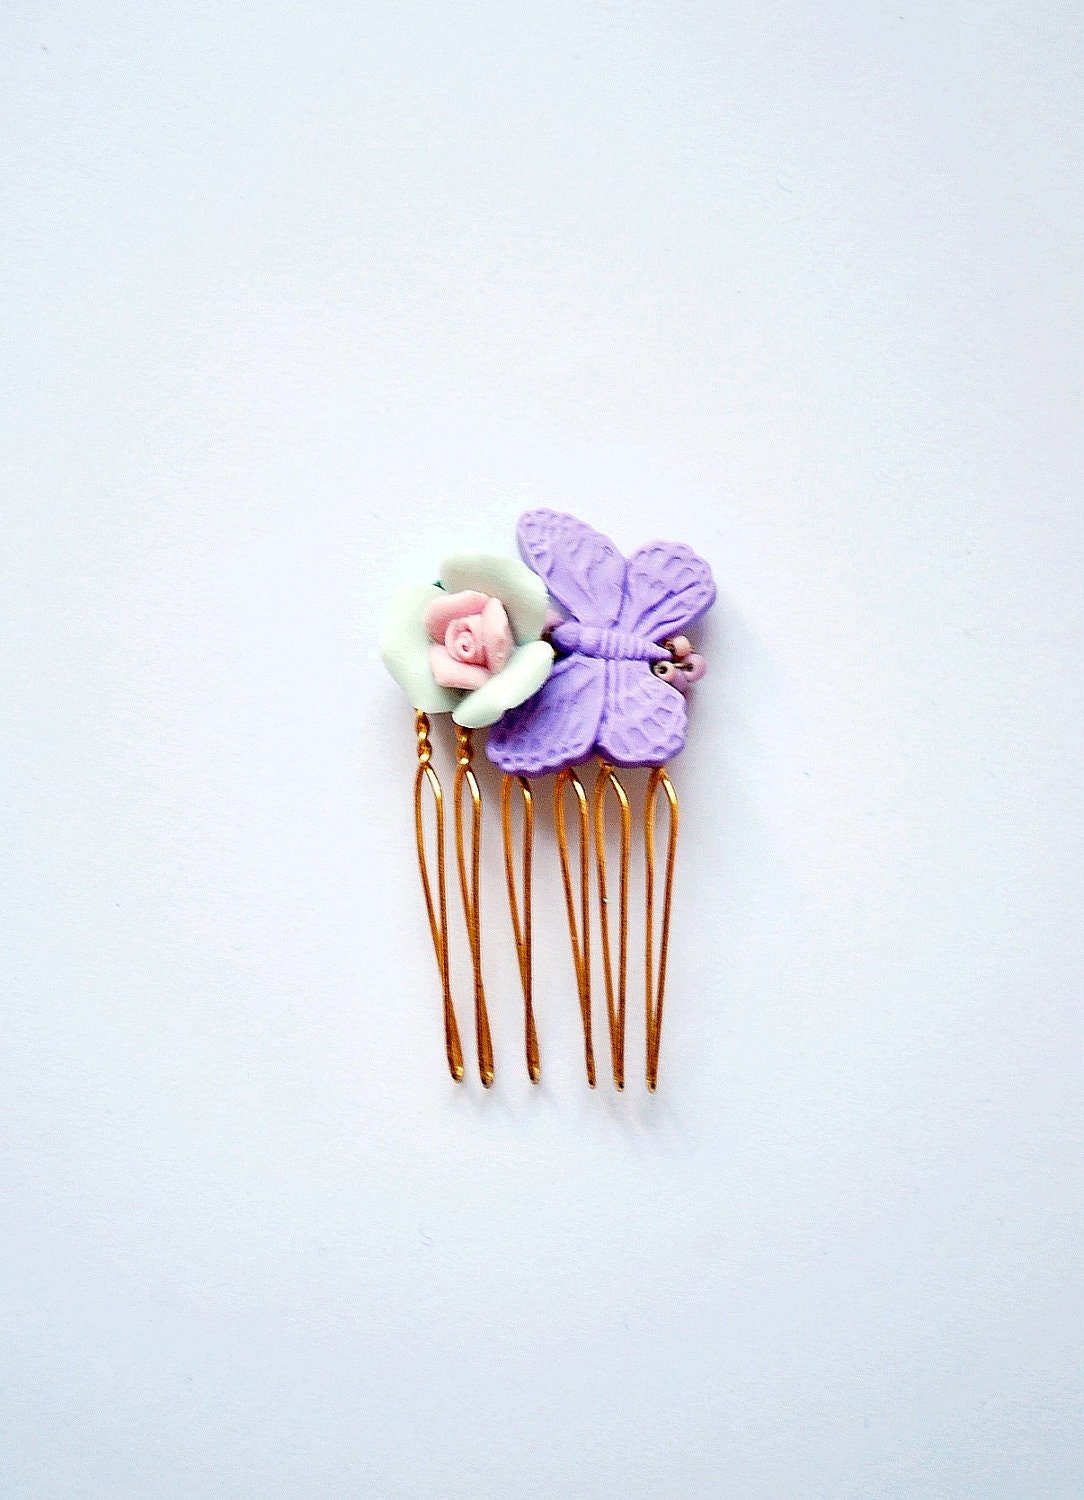 Little hair comb with a pastel rose and a butterfly - a romantic hair adornment piece in mint, pastel rose and lavender, a graceful detail - missbabacilu